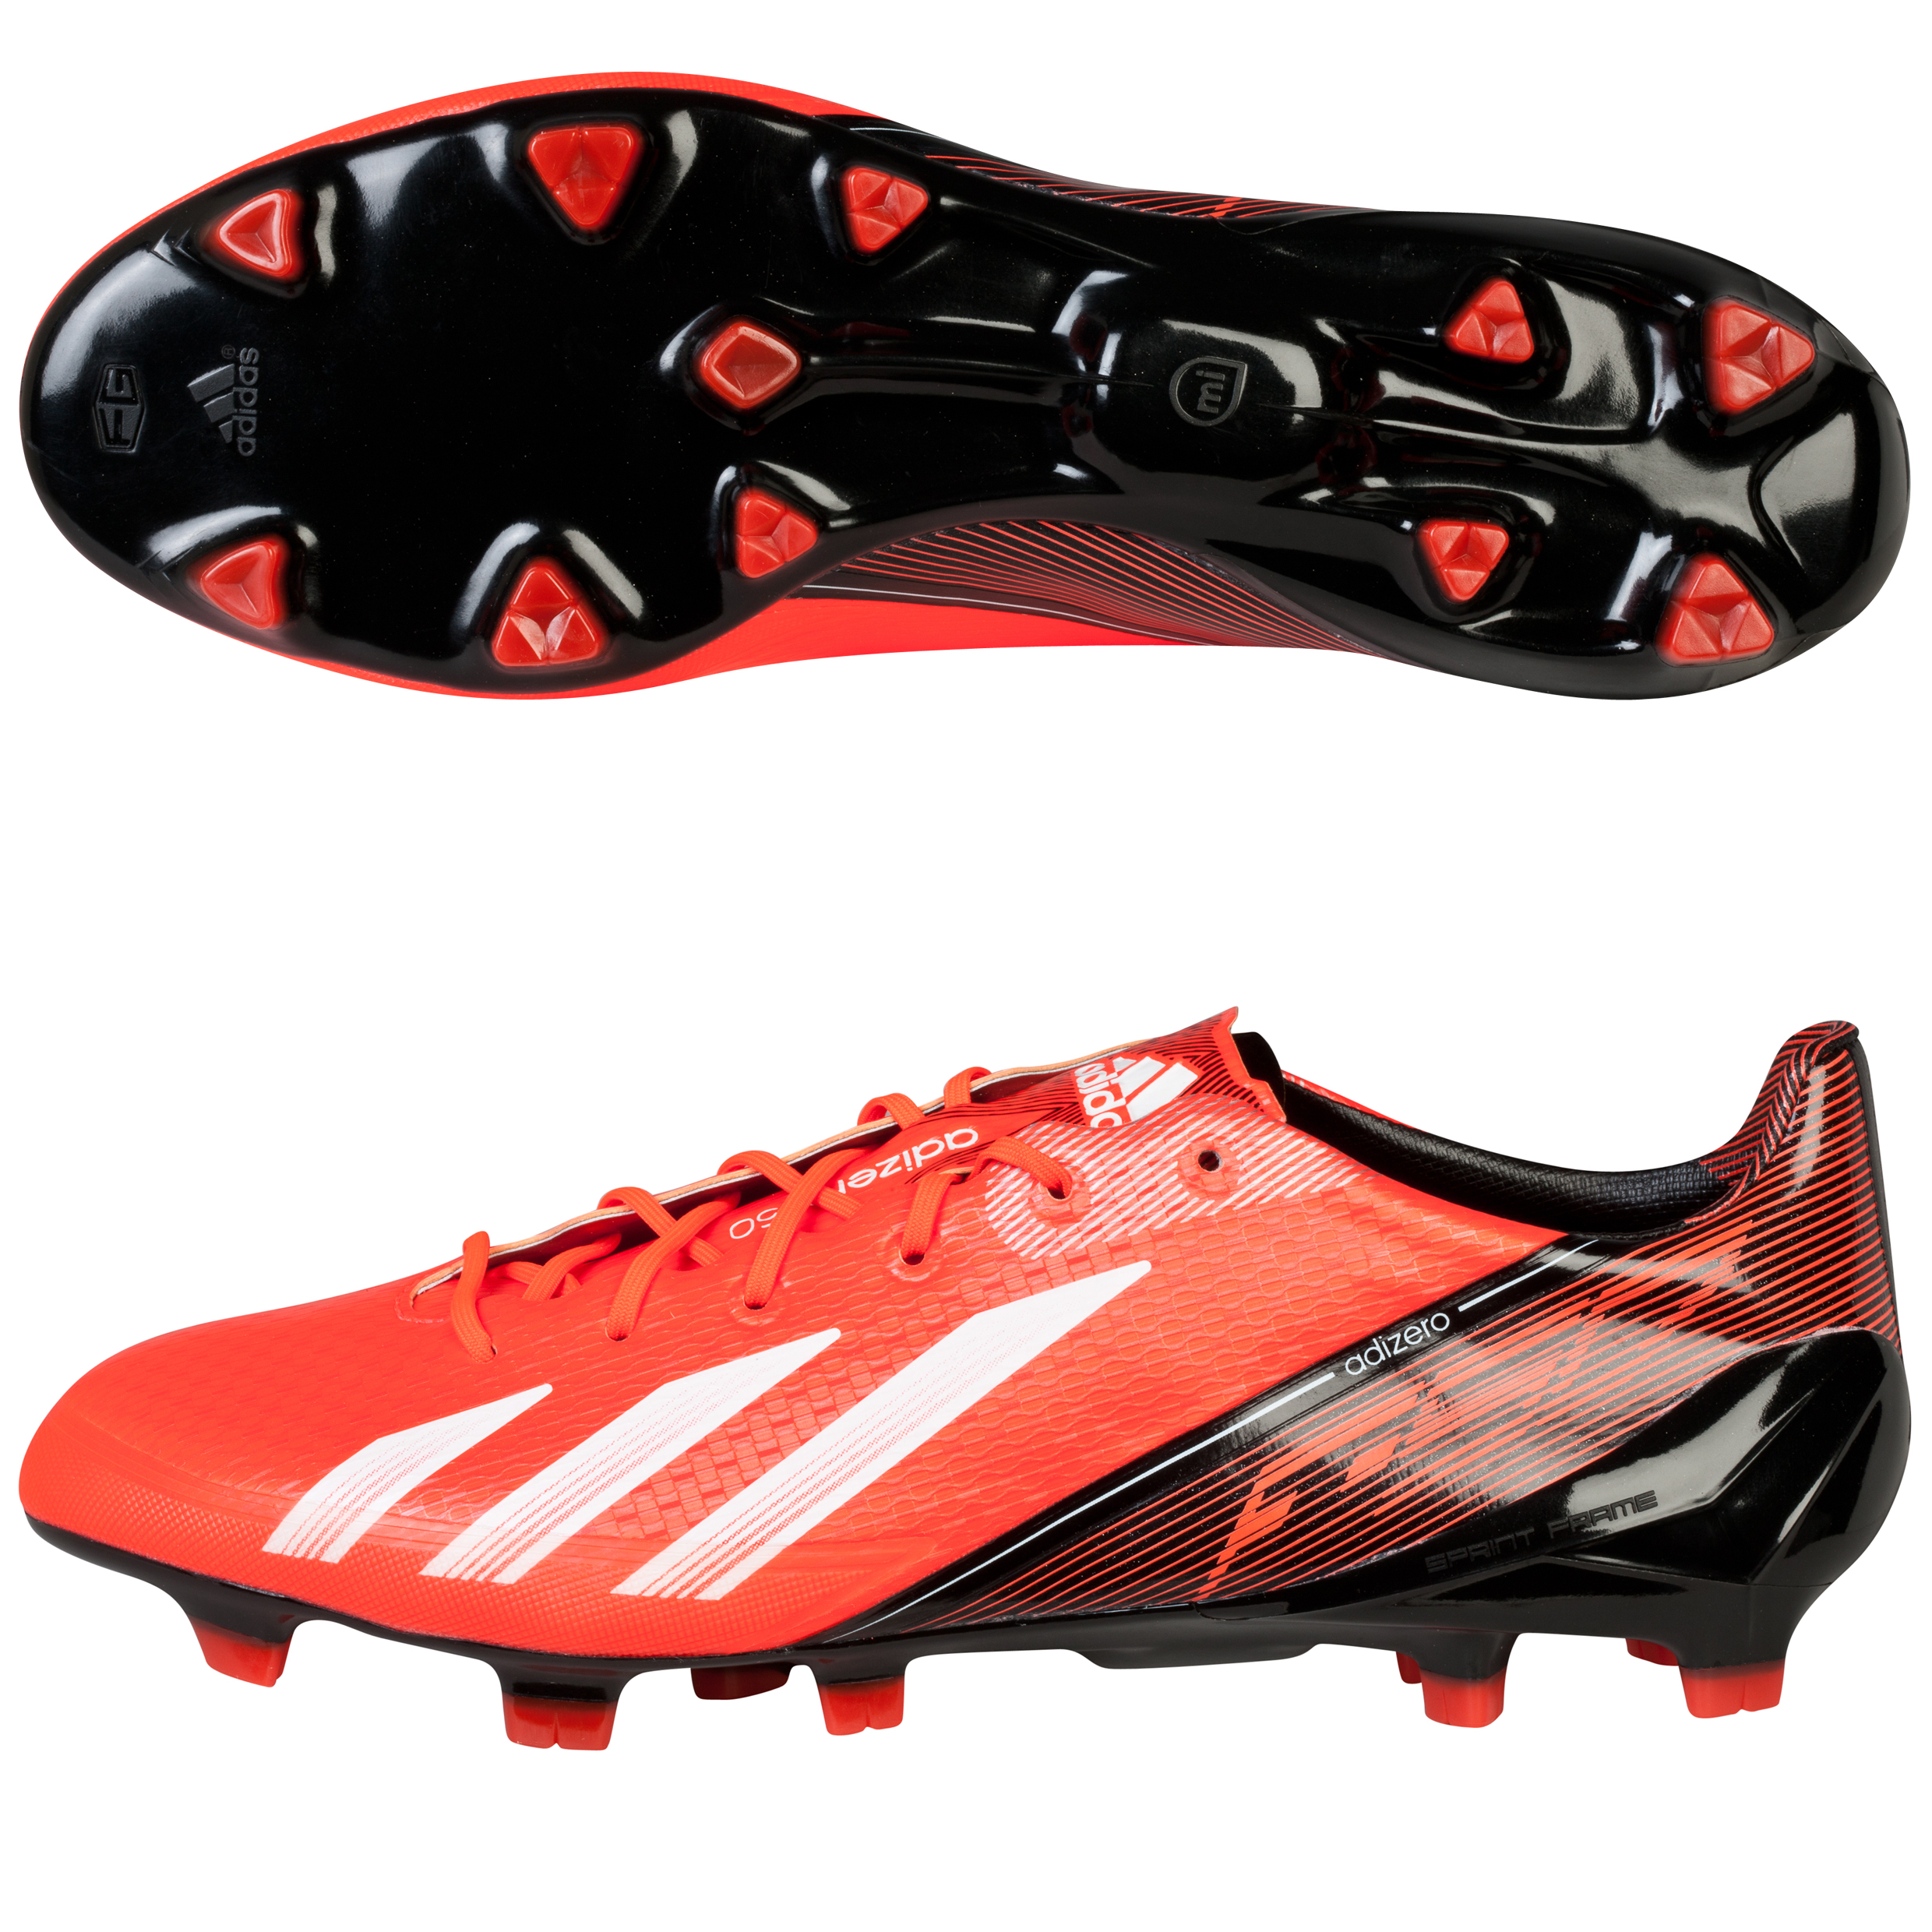 Adidas adizero F50 TRX Firm Ground Football Boots Red